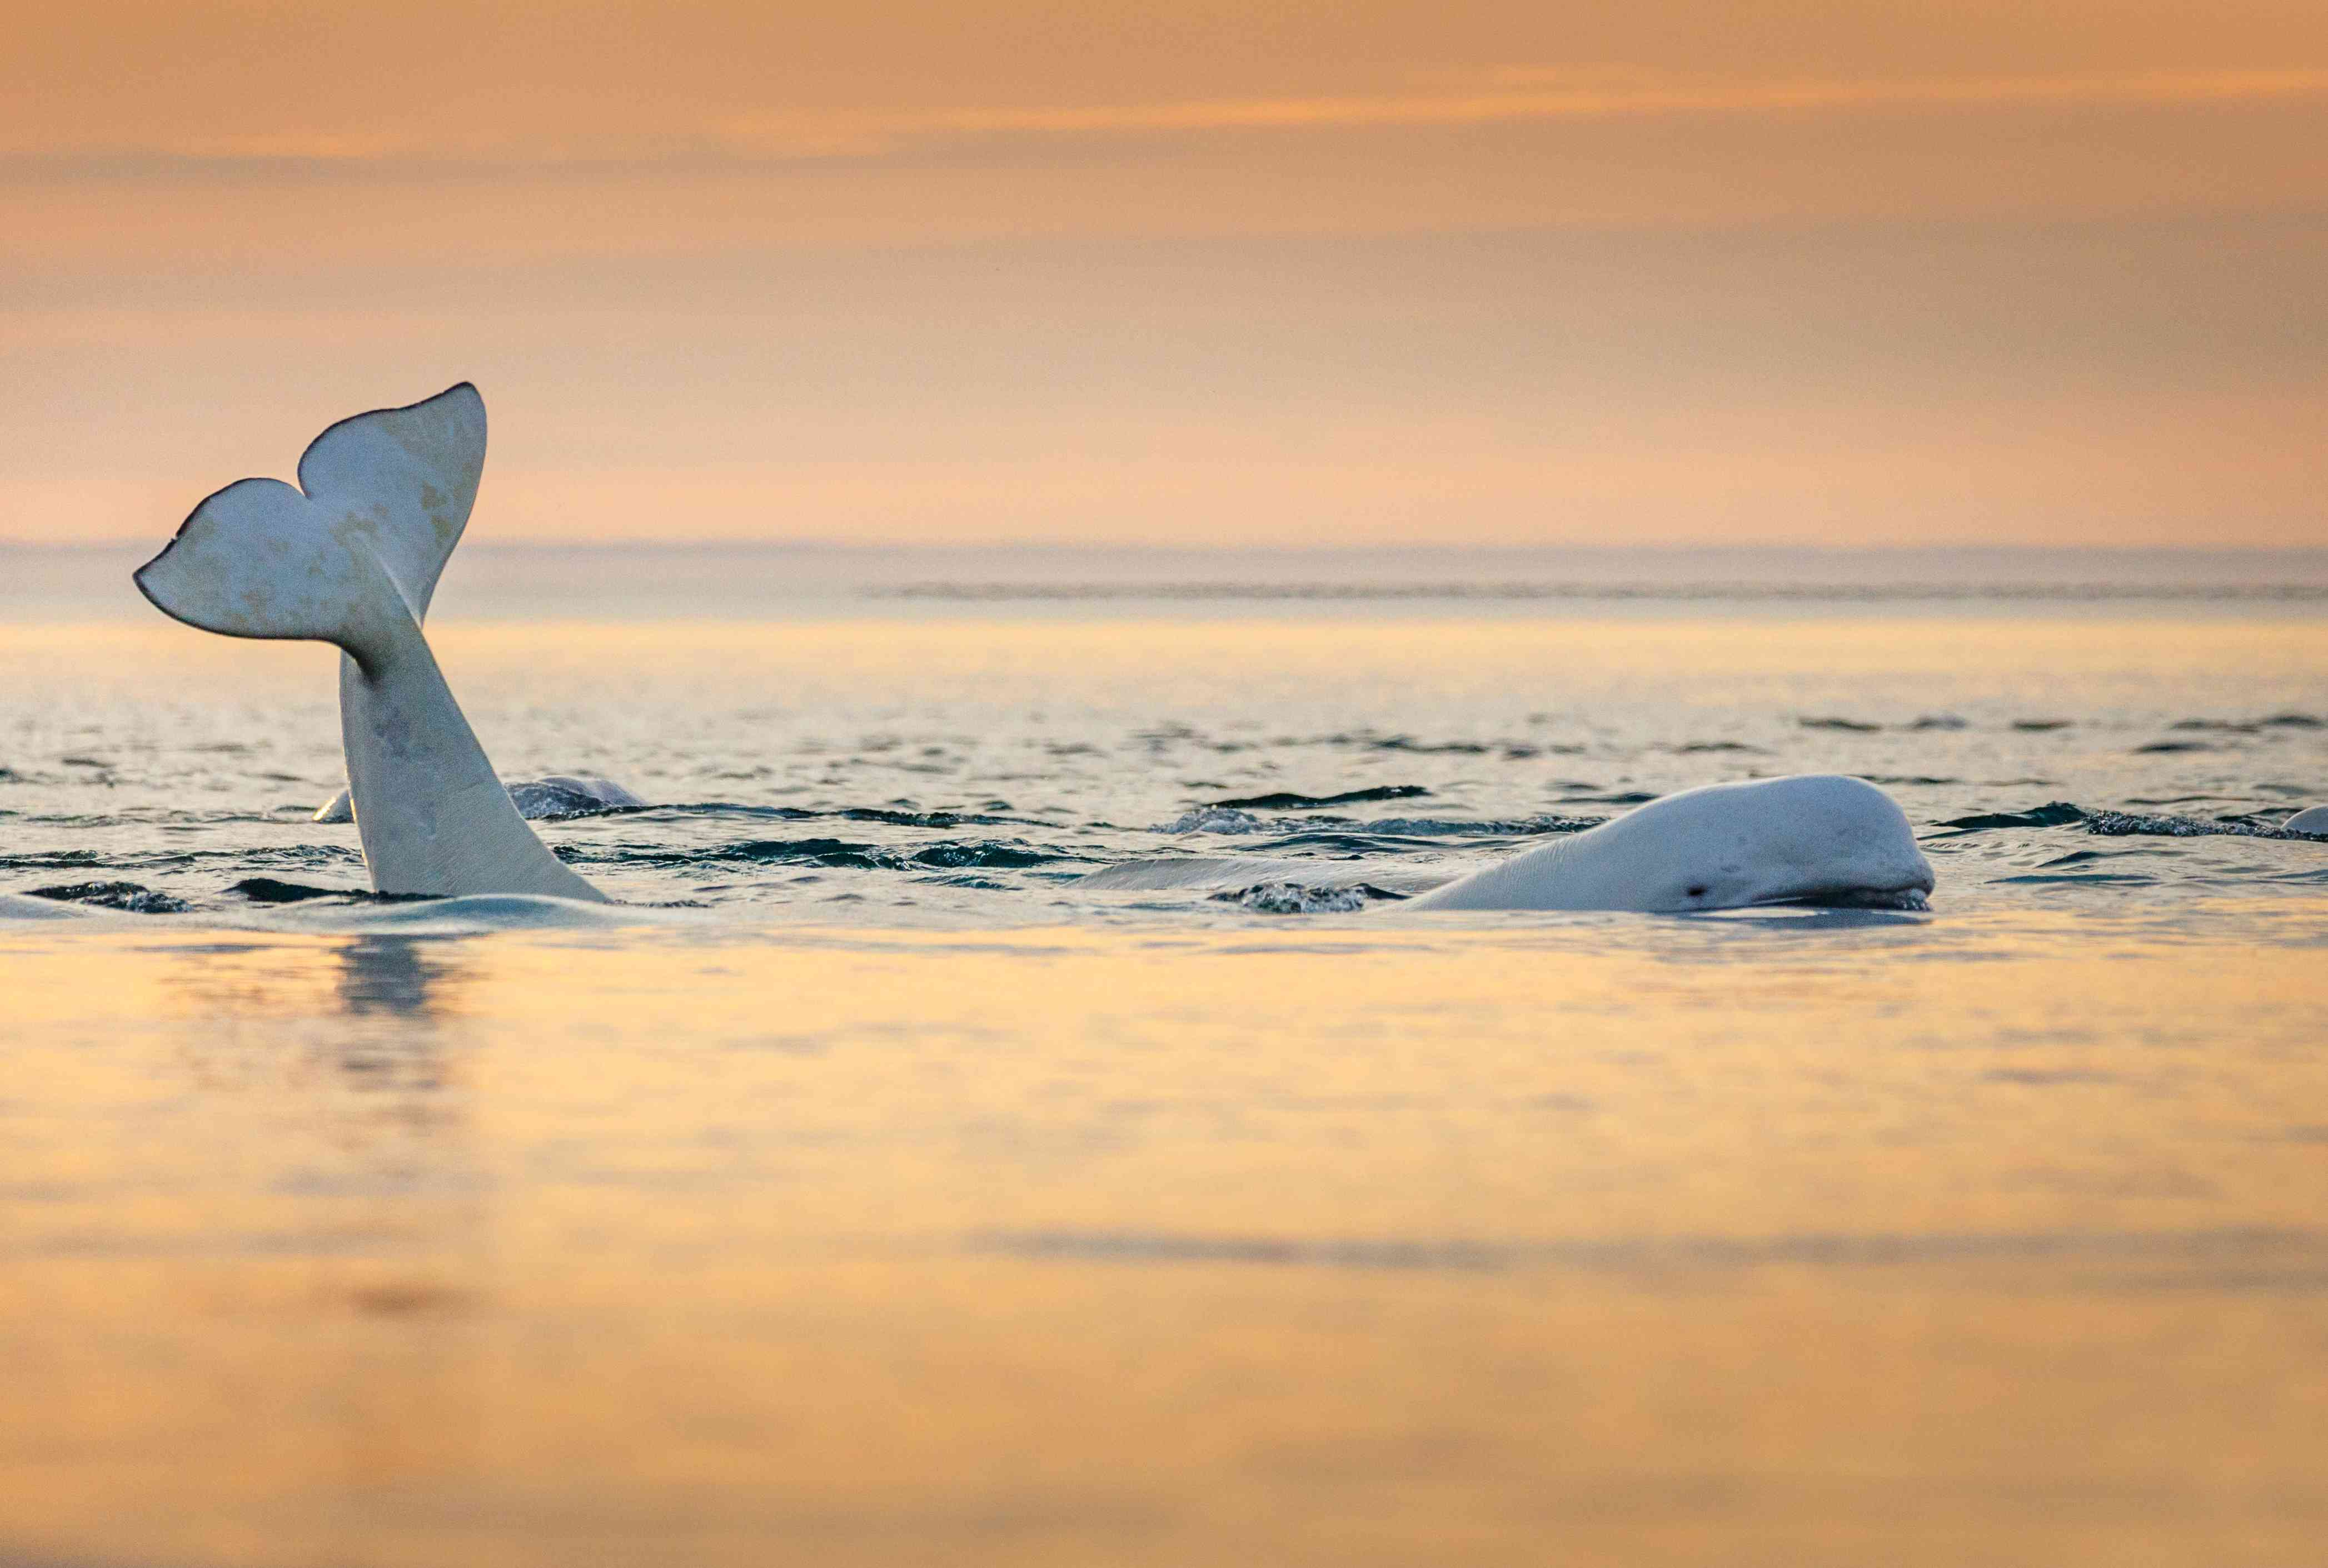 A beluga surfaces at sunset near Somerset Island in the Canadian Arctic.